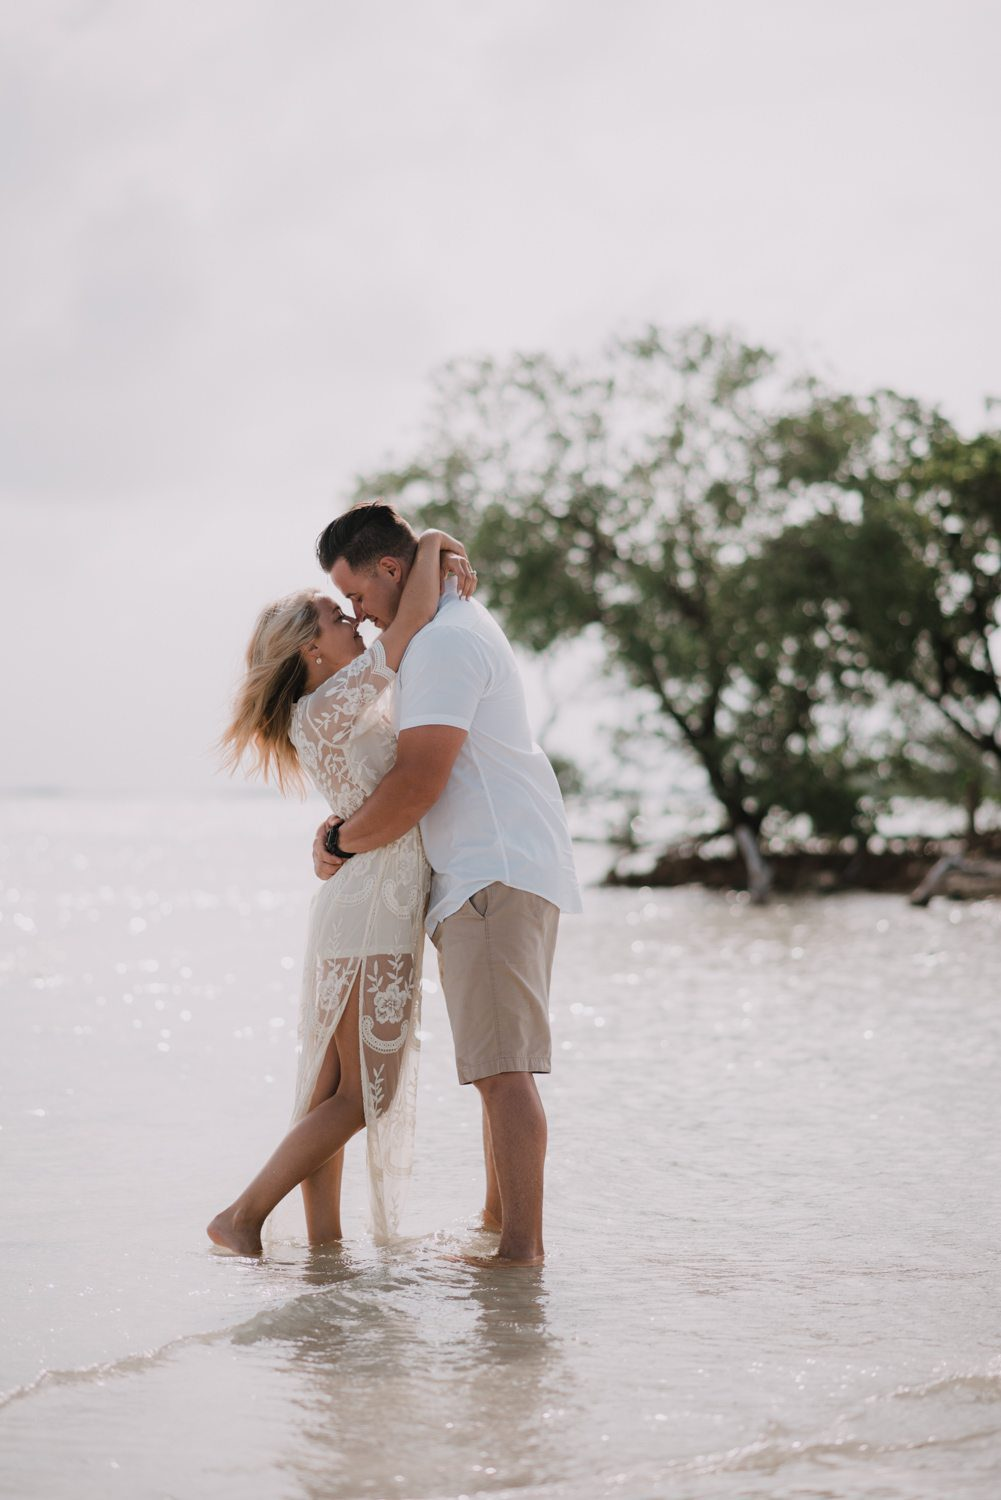 fort zachary taylor snipes key west engagement 32 - Key West Engagement Session - Cecilia & Dominick